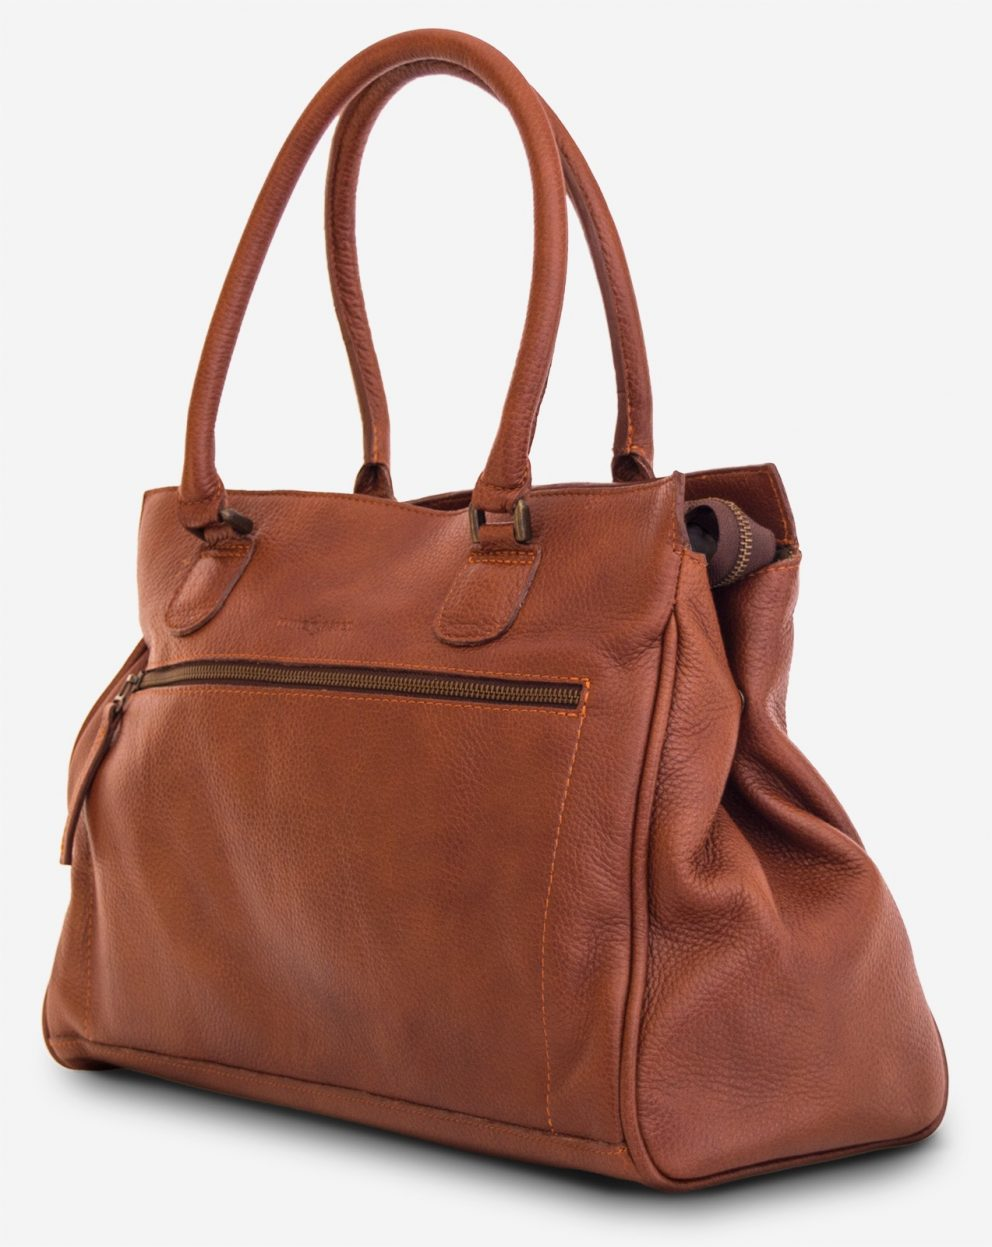 Side view of the woman soft leather handbag for school.